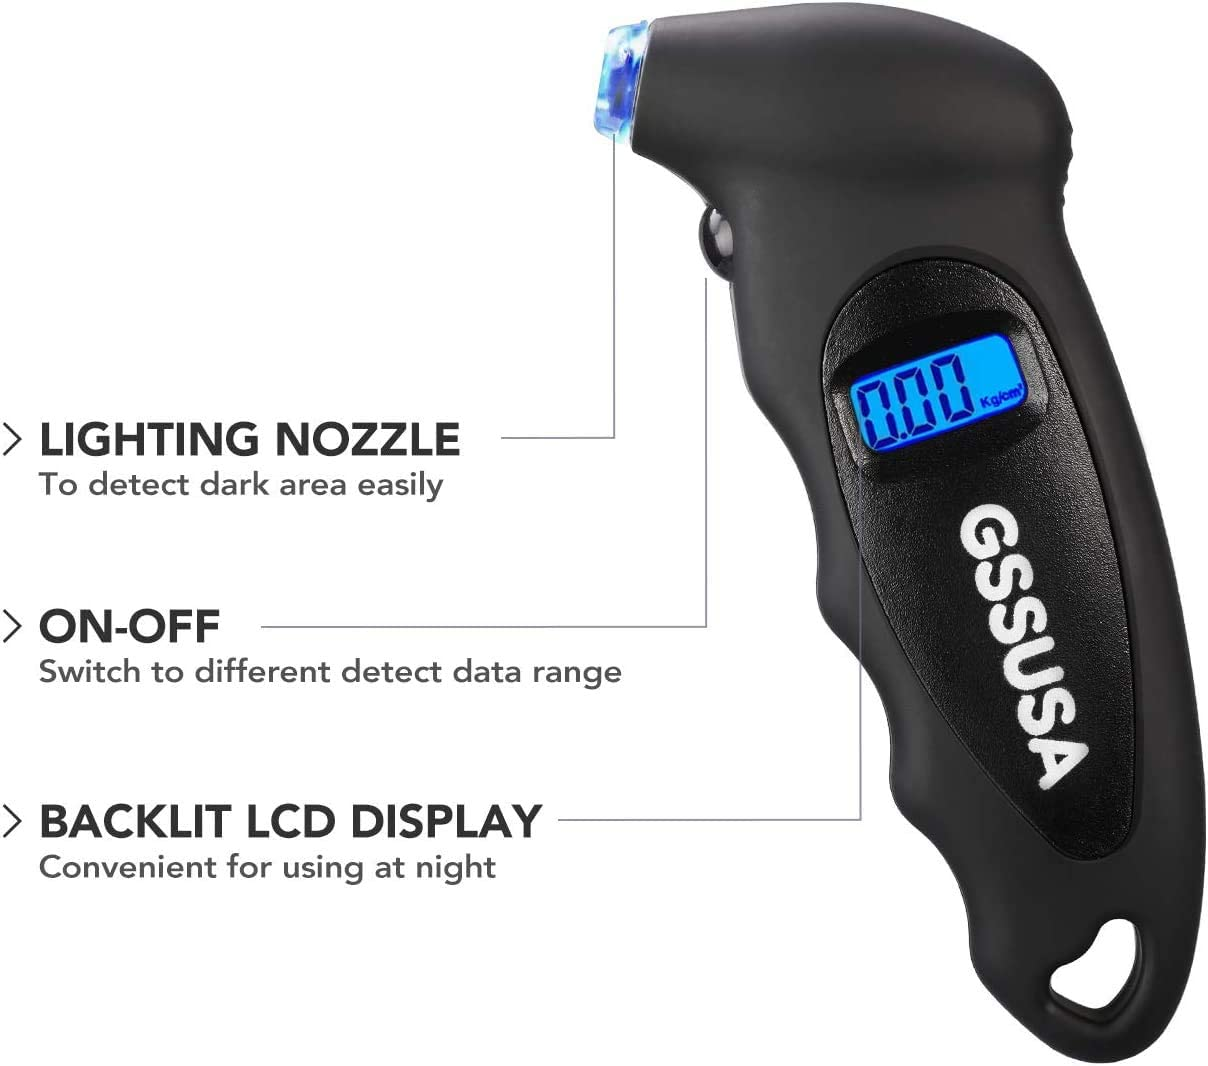 Black 1 Pack Switory Digital Tire Pressure Gauge 150 PSI 4 Settings for Car Motorcycle Truck Bicycle Bike with Backlit LCD Non-Slip Grip /& Lighted Nozzle